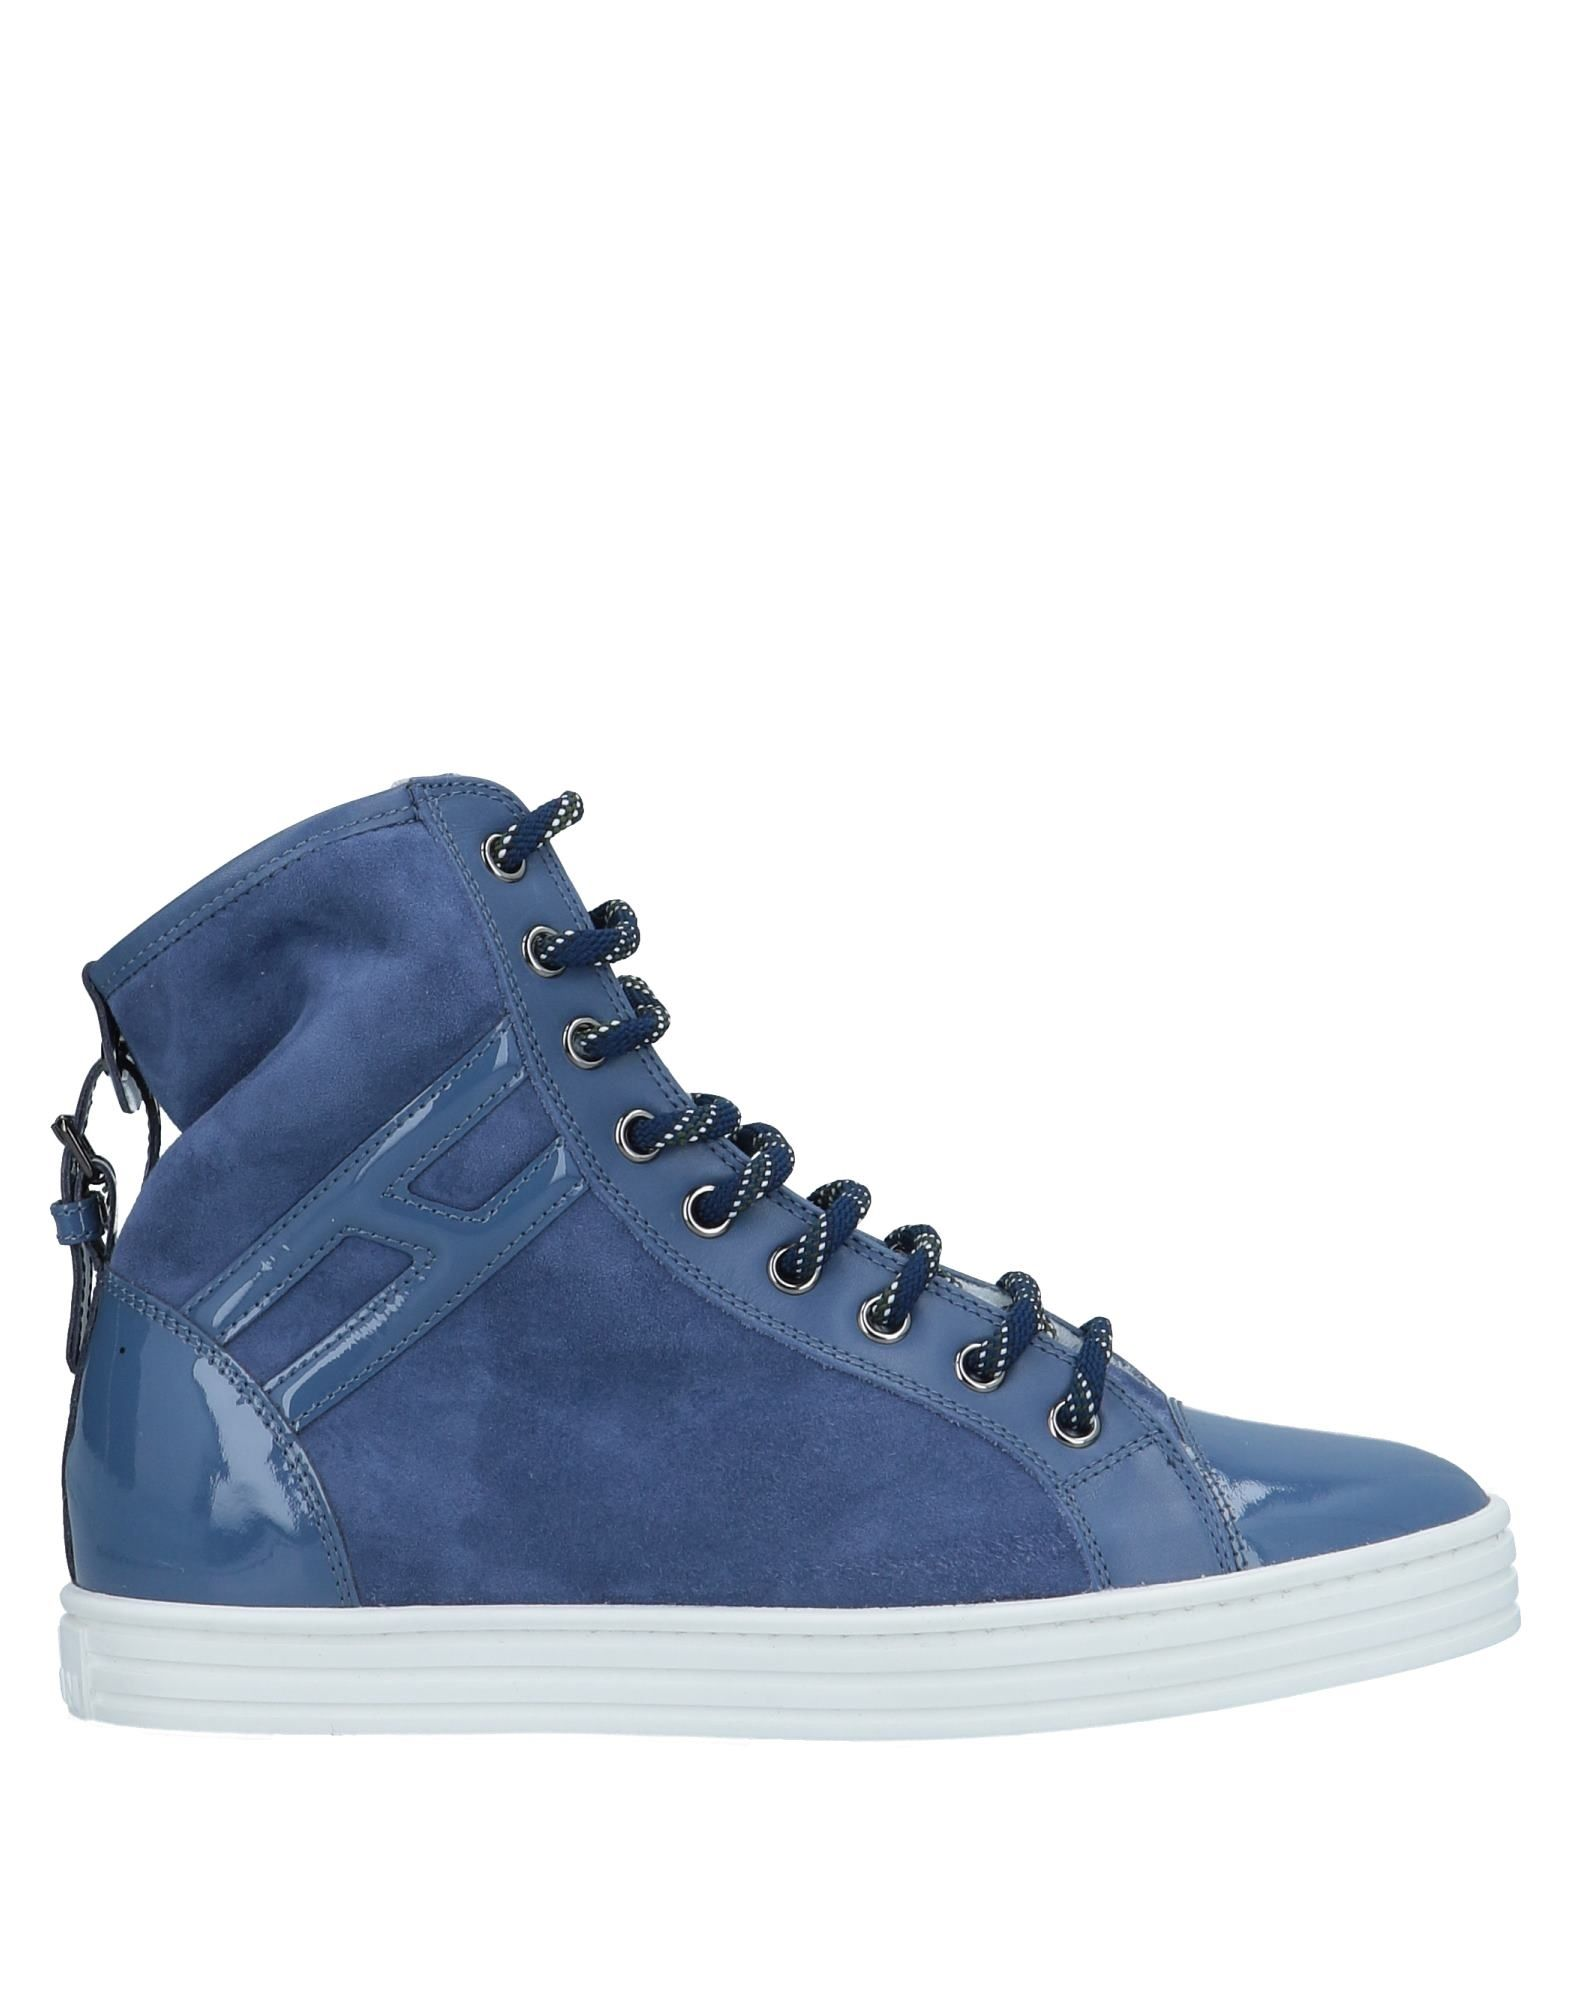 Hogan Rebel Sneakers - Women Hogan  Rebel Sneakers online on  Hogan United Kingdom - 11568089RU 88efbc